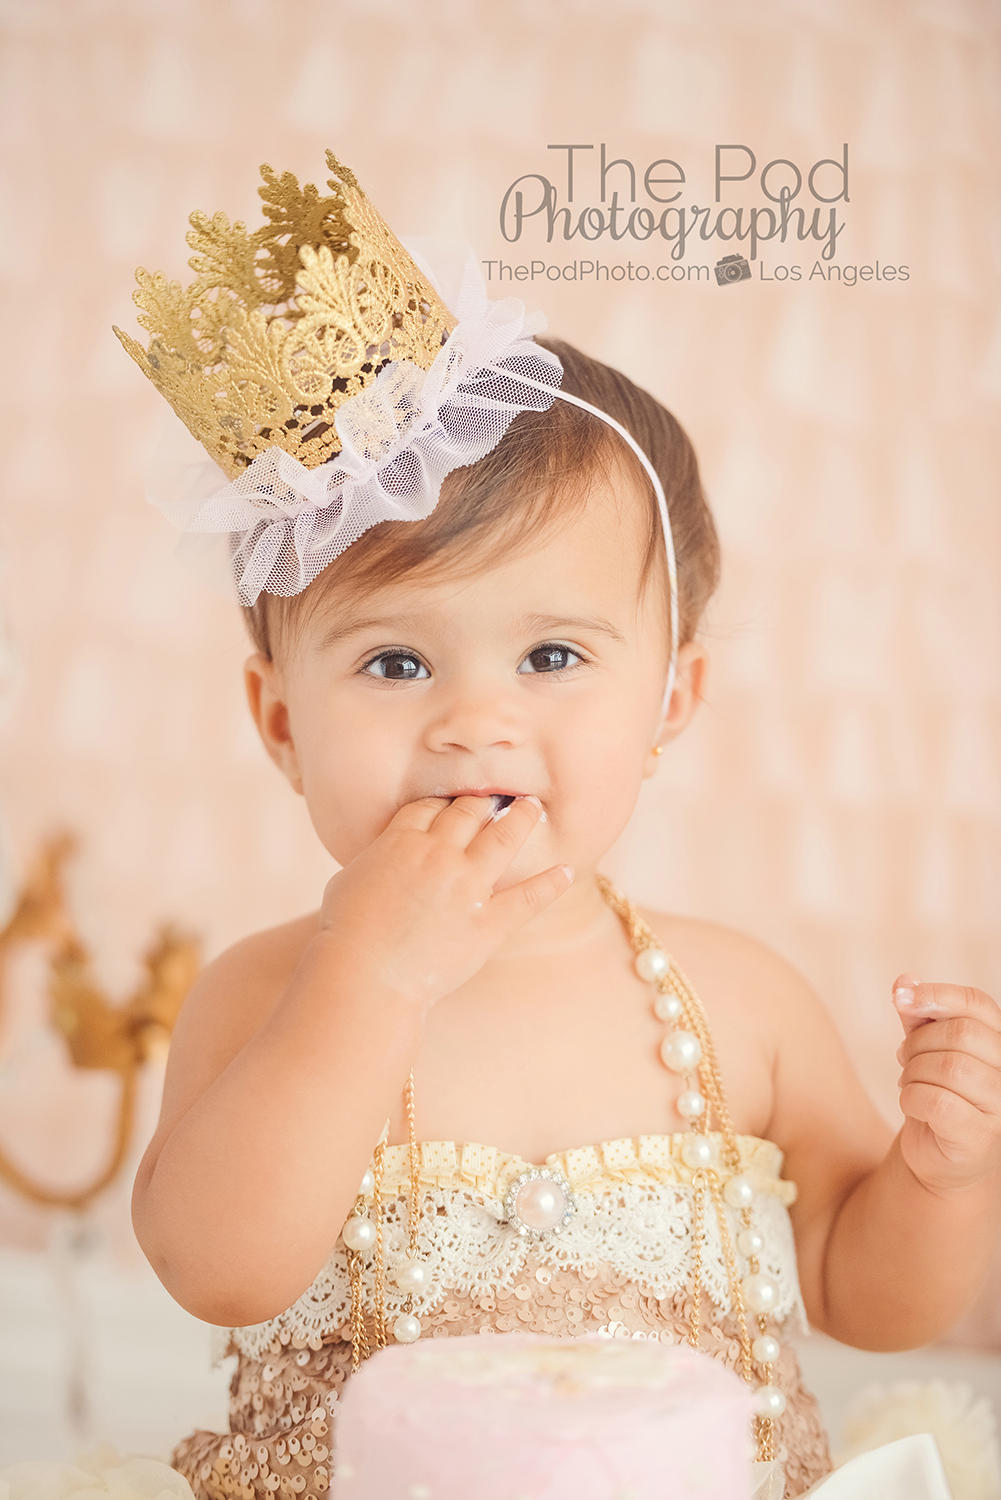 Cute birthday outfit ideas for girl photo shoot